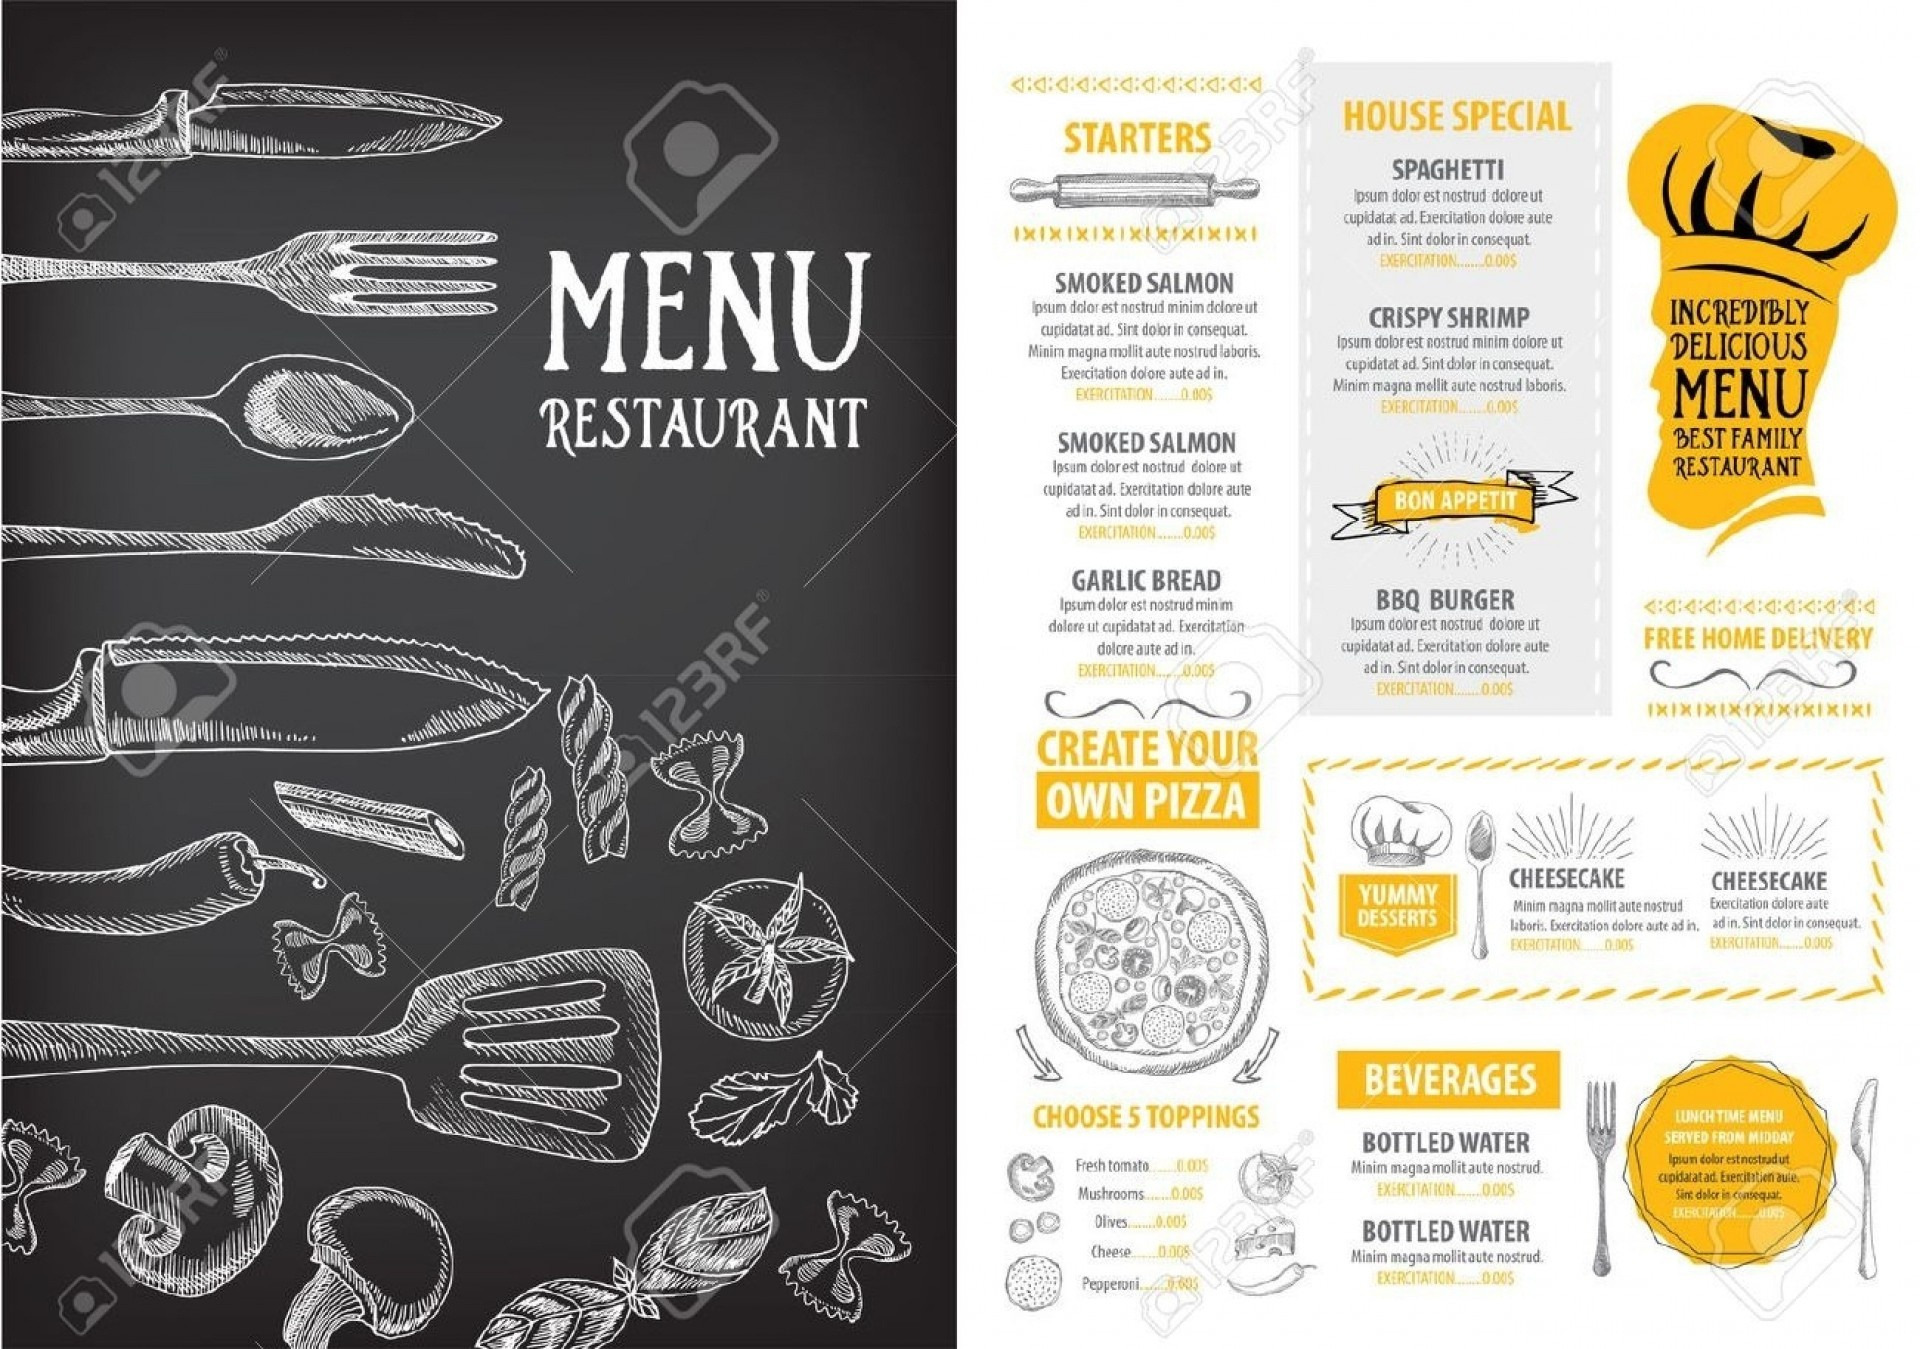 007 Free Menu Design Templates Template Printables And Charts - Design A Menu For Free Printable